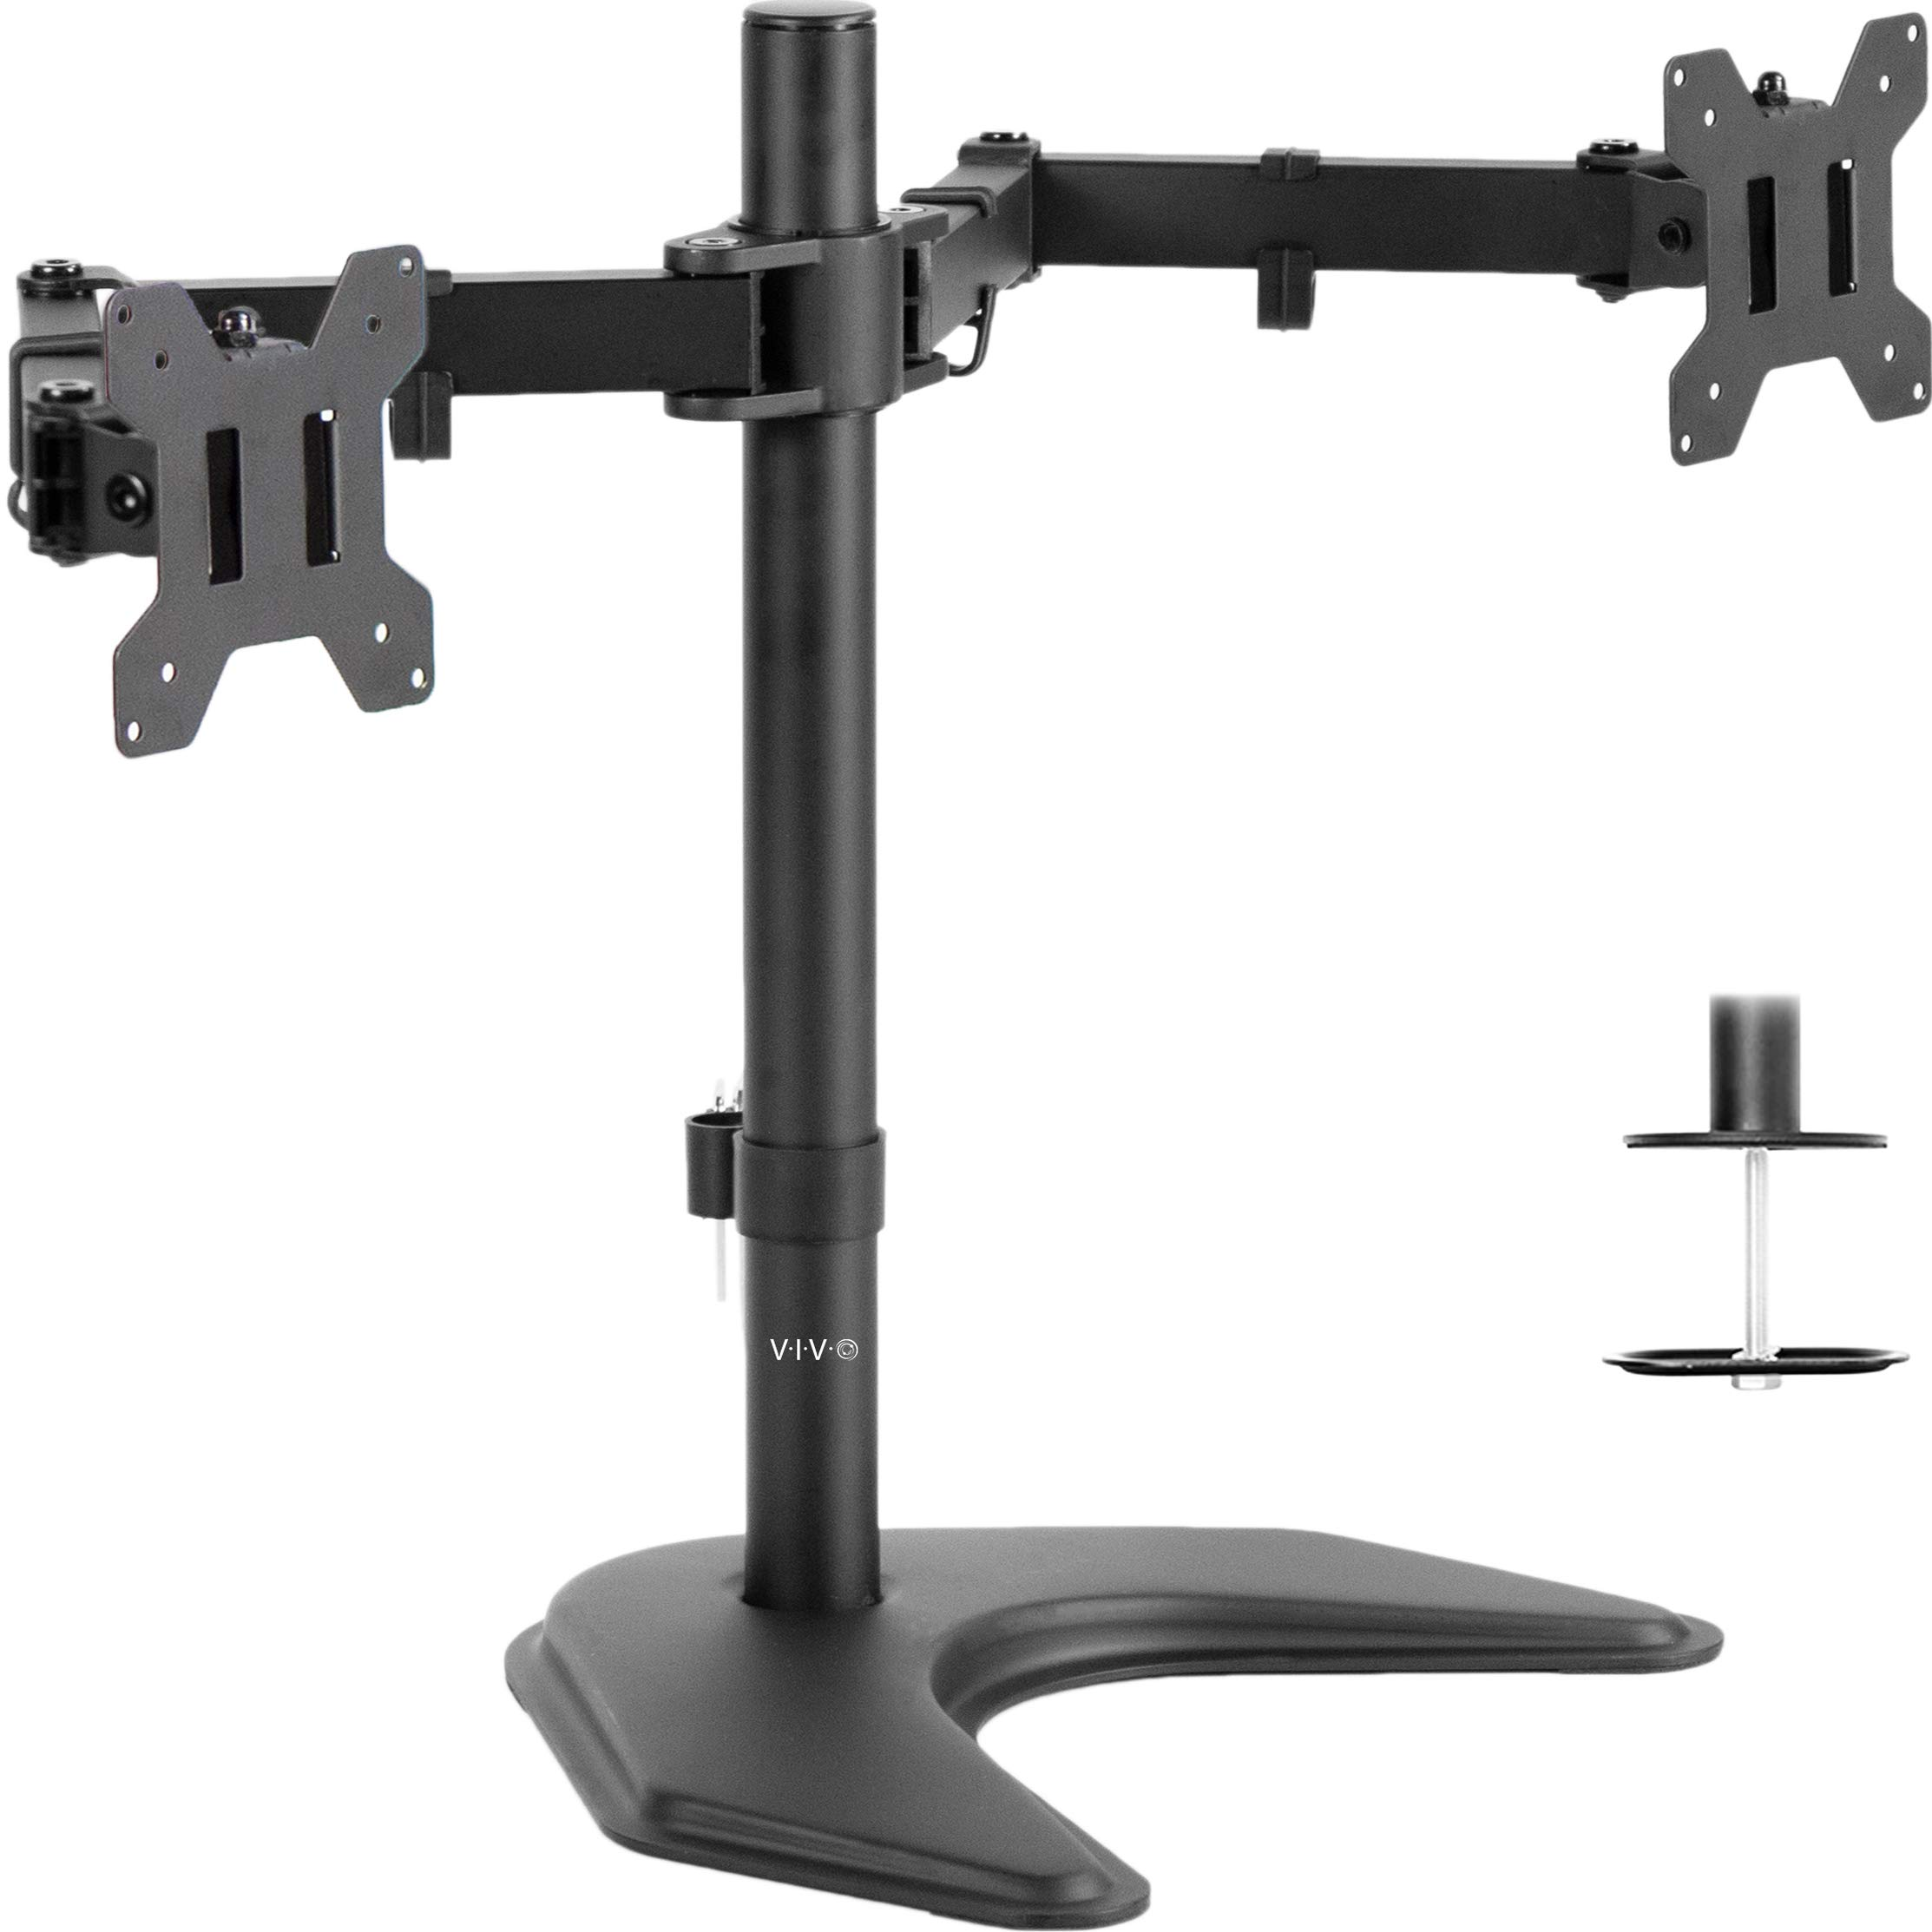 VIVO Dual LED LCD Monitor Free-Standing Desk Stand for 2 Screens up to 27 inches | Heavy-Duty Fully Adjustable Arms with Optional Bolt-Through Grommet Mount (STAND-V002F) by VIVO